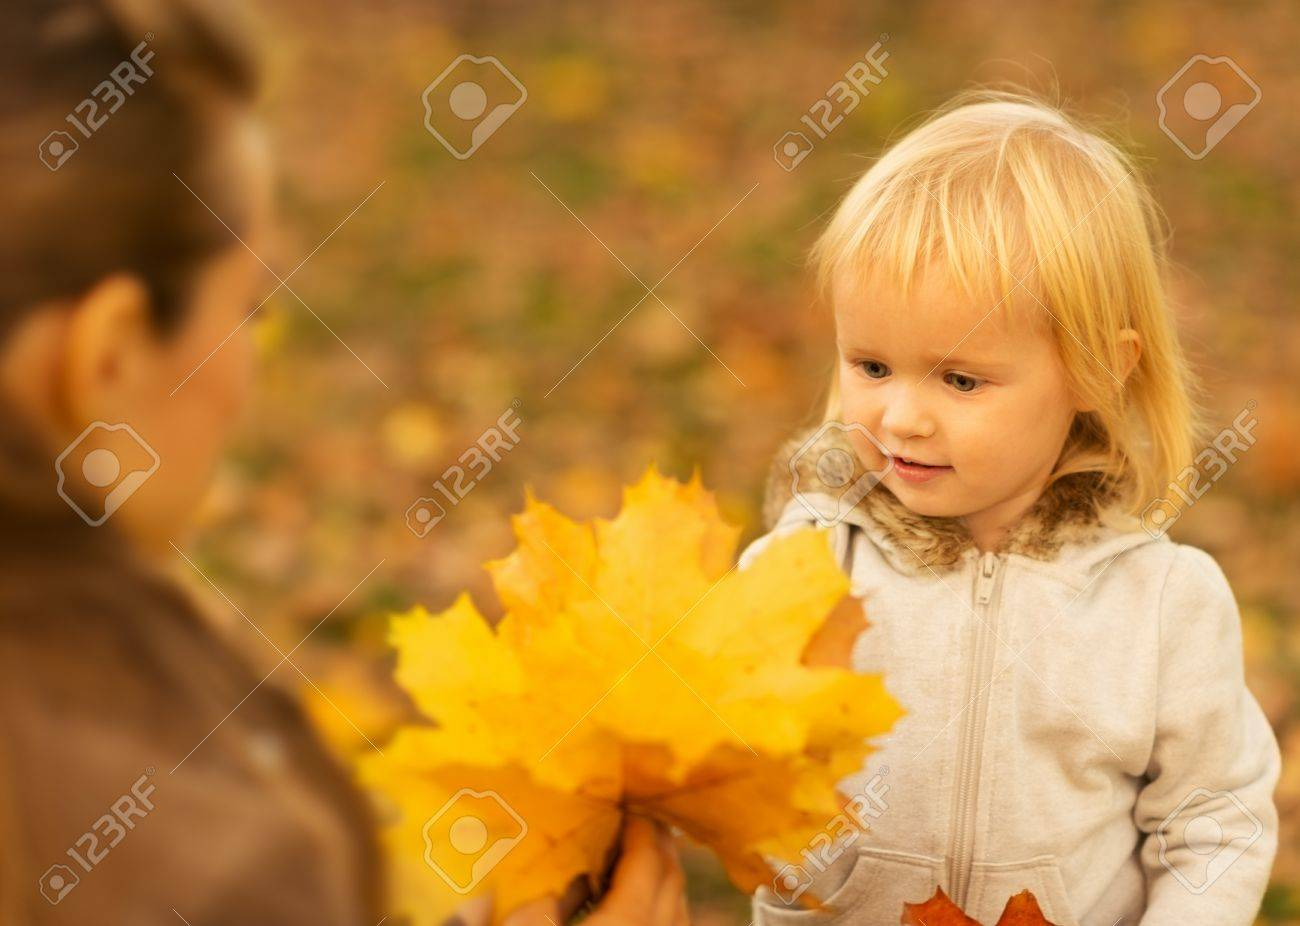 Mother showing baby fallen leaves Stock Photo - 16030793